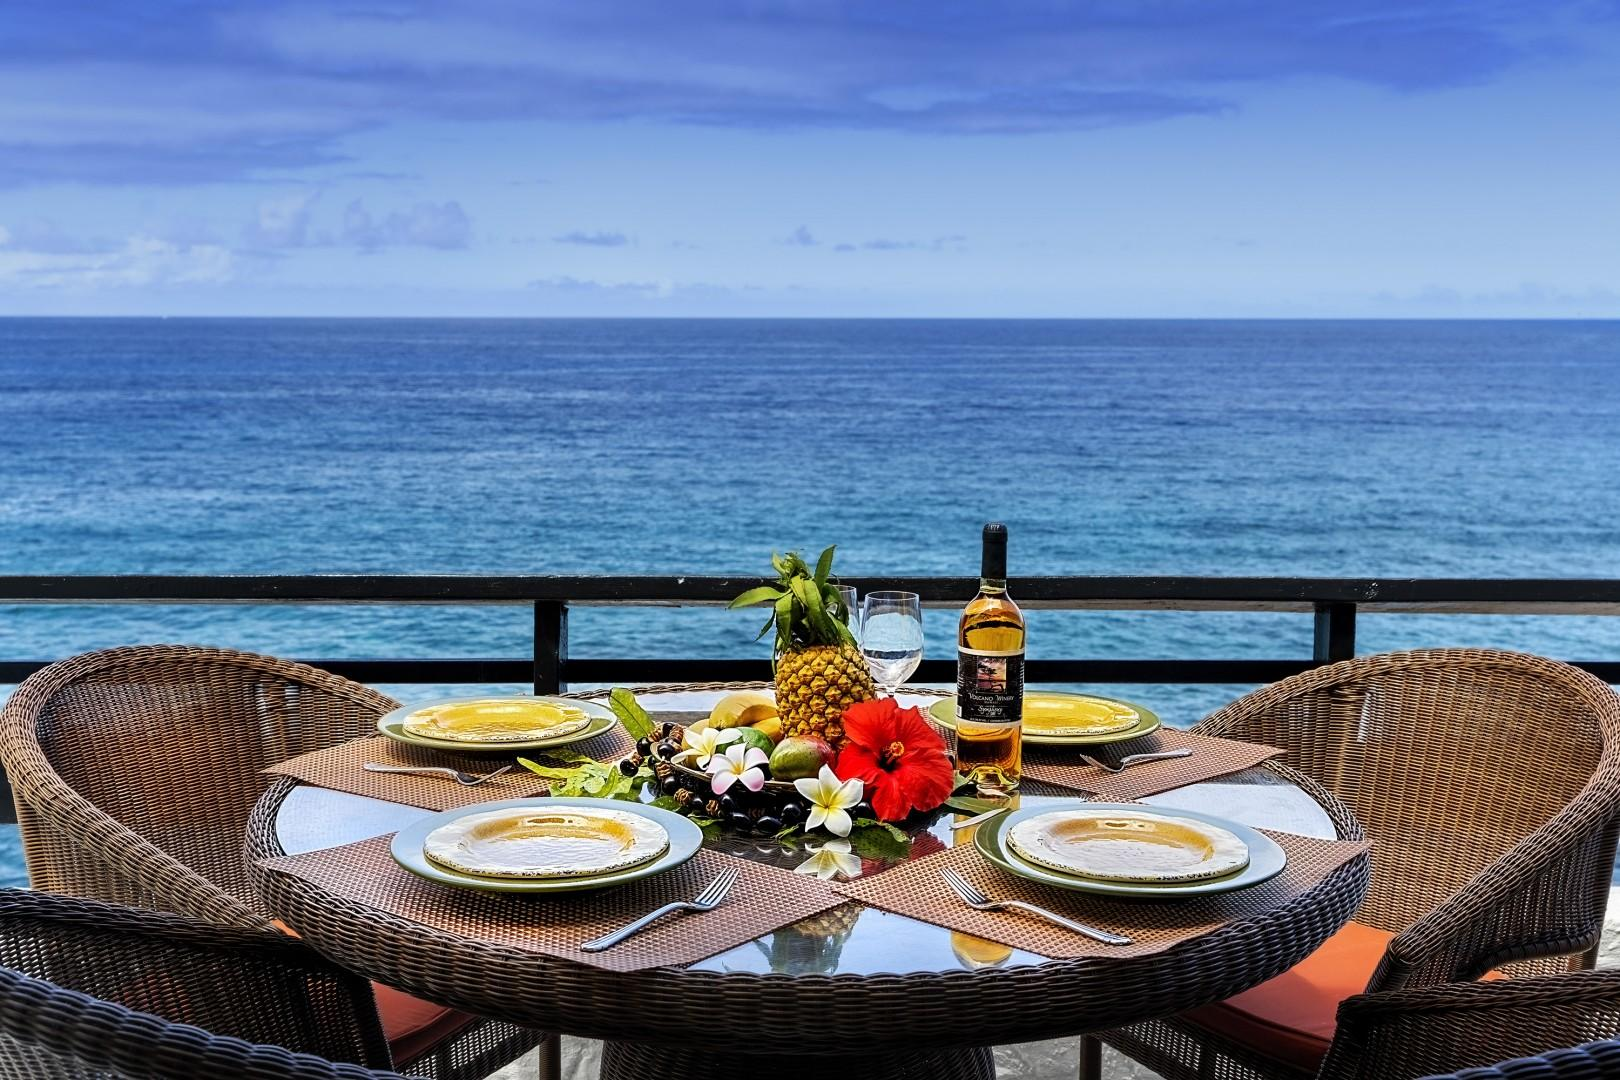 Imagine meals with this view!